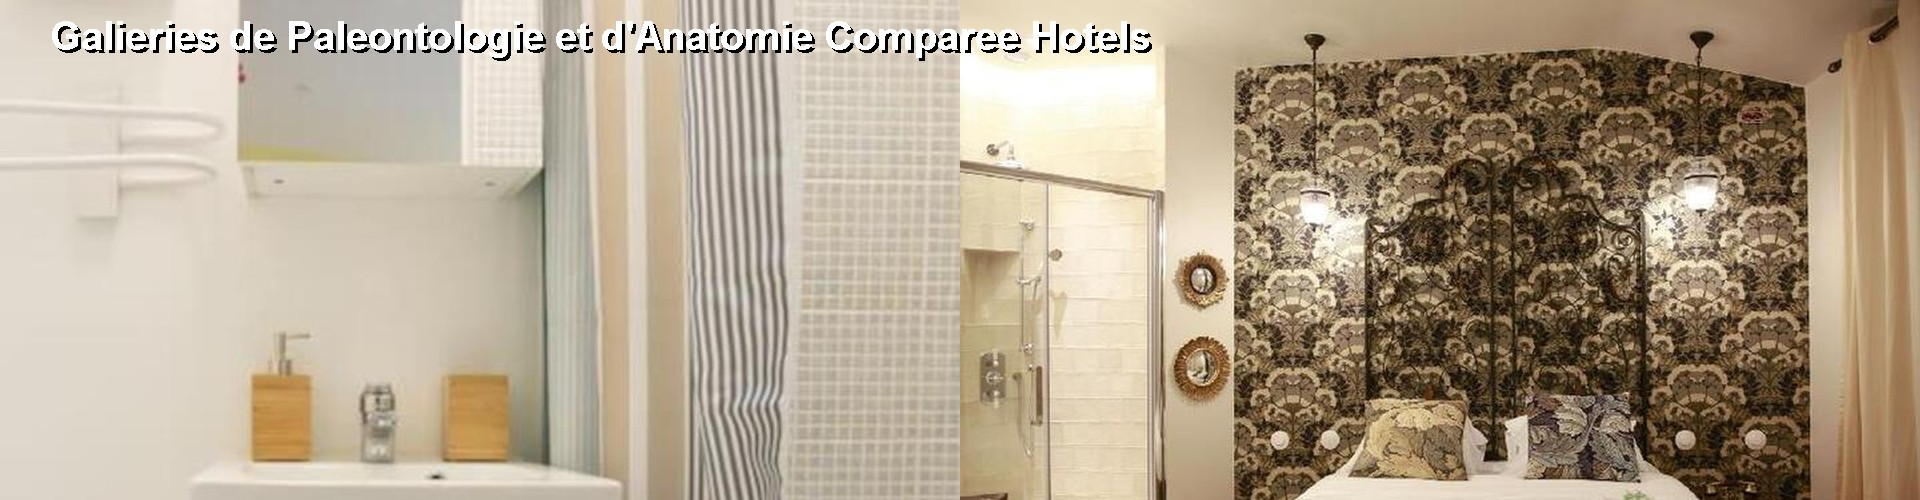 5 Best Hotels near Galieries de Paleontologie et d'Anatomie Comparee